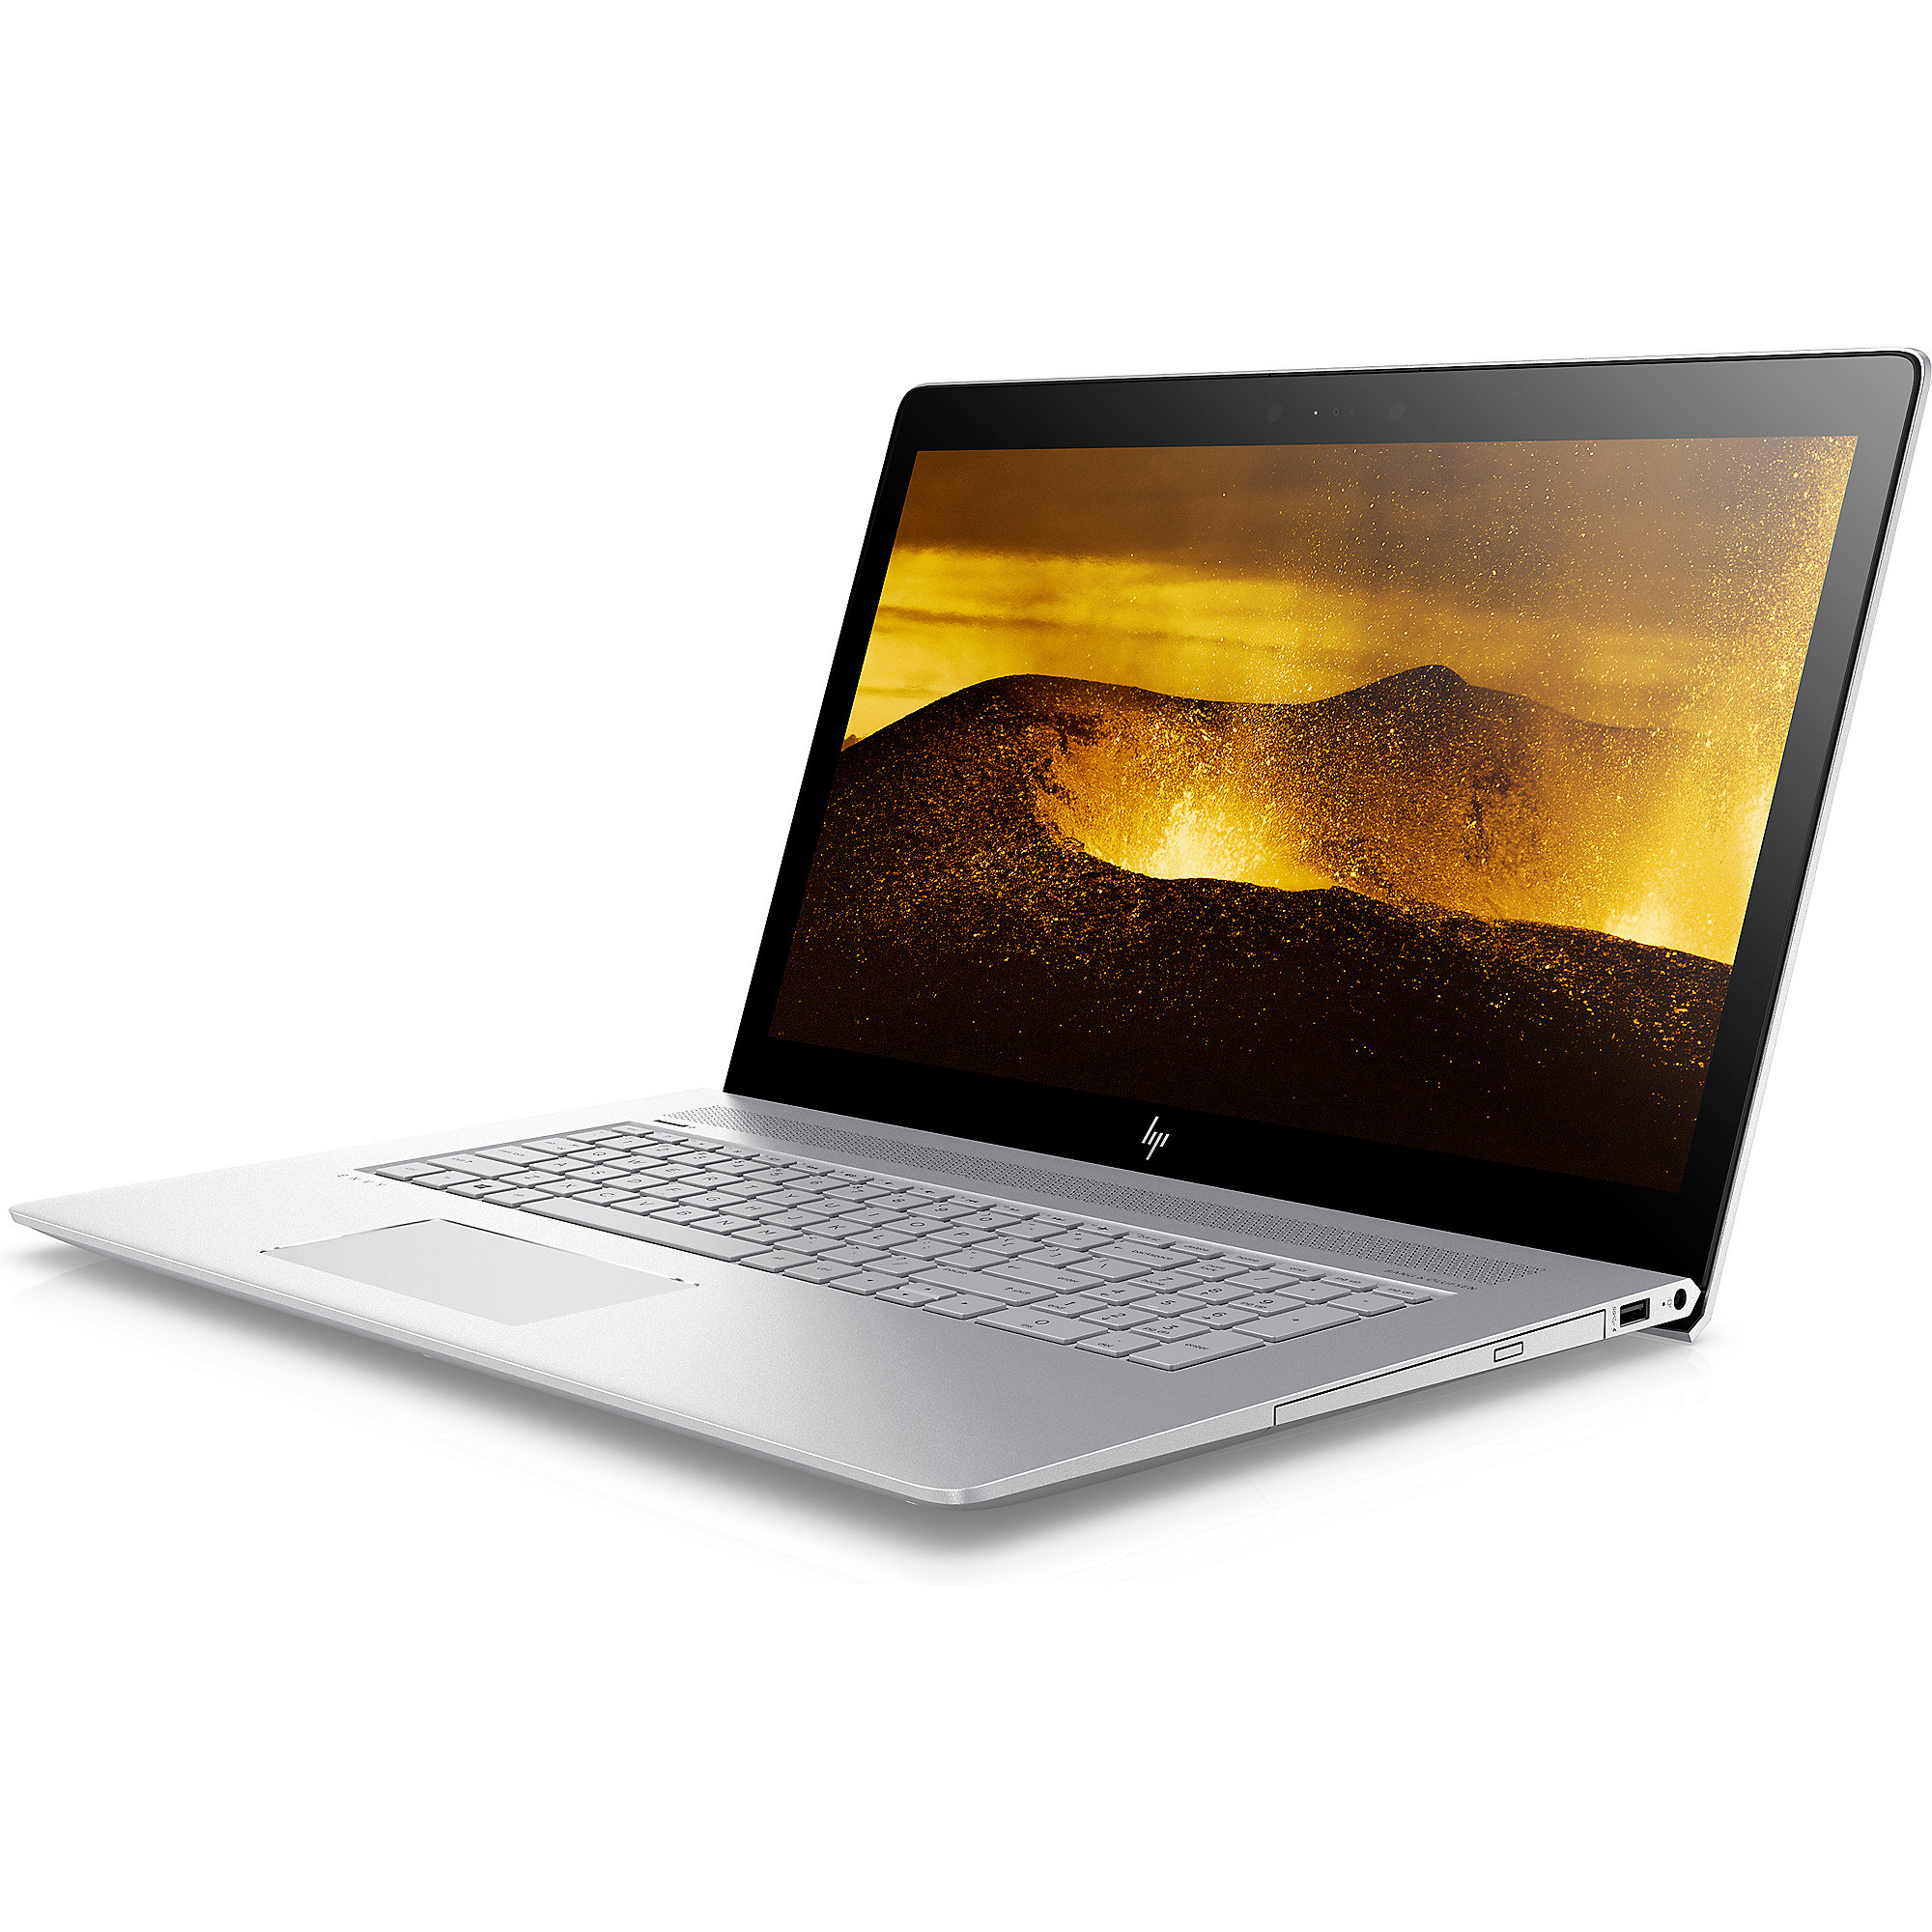 "HP Envy 17-ae007ng i5-7200U 8GB/1TB 17"" FHD GT 940MX W10"